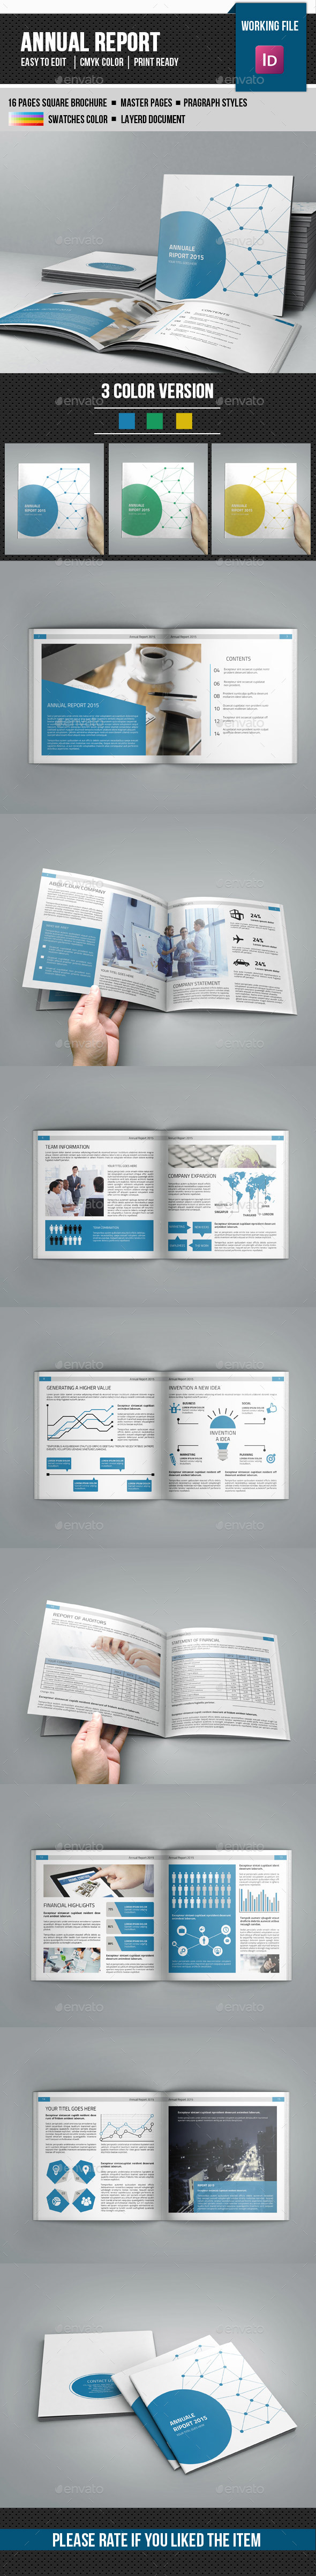 Square Corporate Annual Report Brochure-V78 - Corporate Brochures